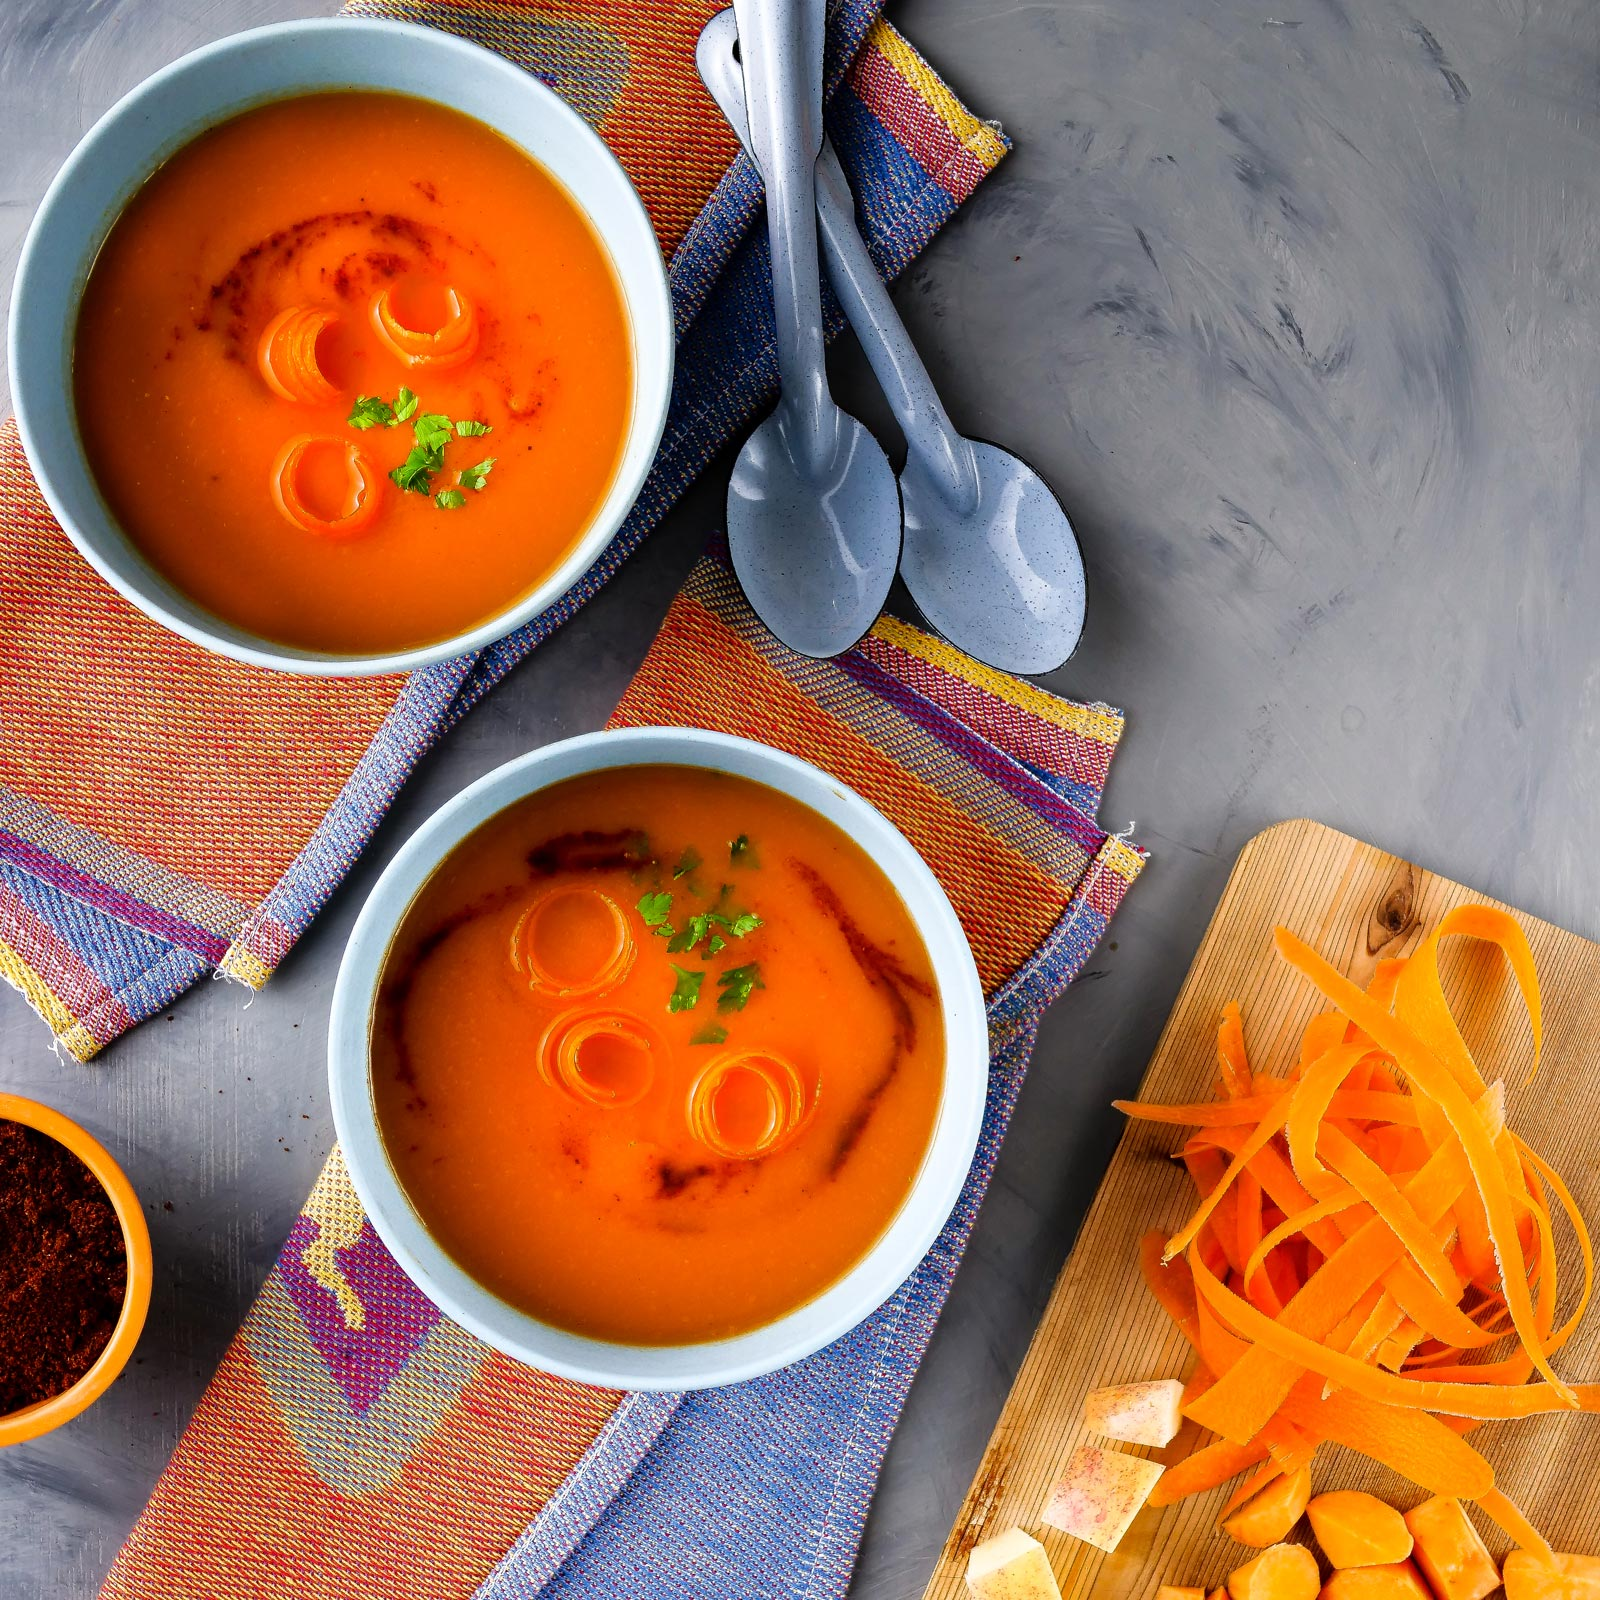 https://goodly.ca/wp-content/uploads/2020/11/Classy-Carrot-Soup-3.jpg